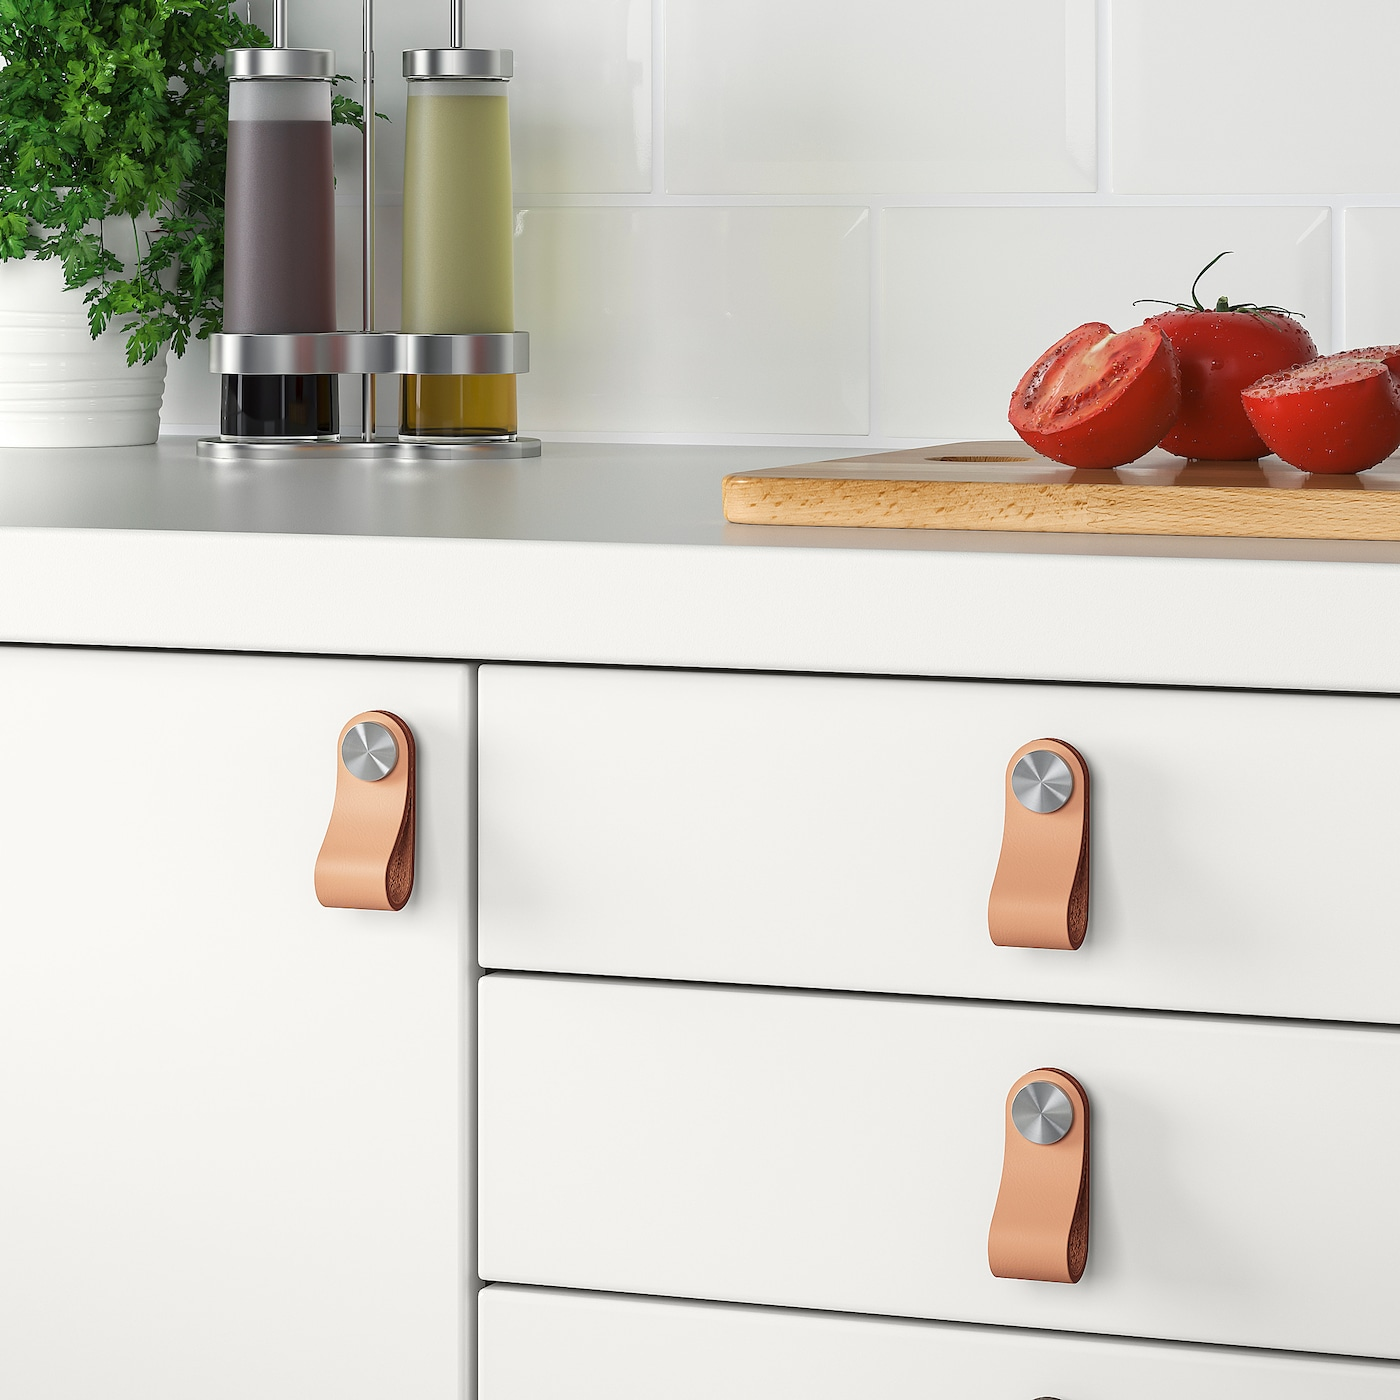 leather drawer handles leather pulls leather knobs drawer pulls leather handle cabinet pulls leather handles leather drawer pulls